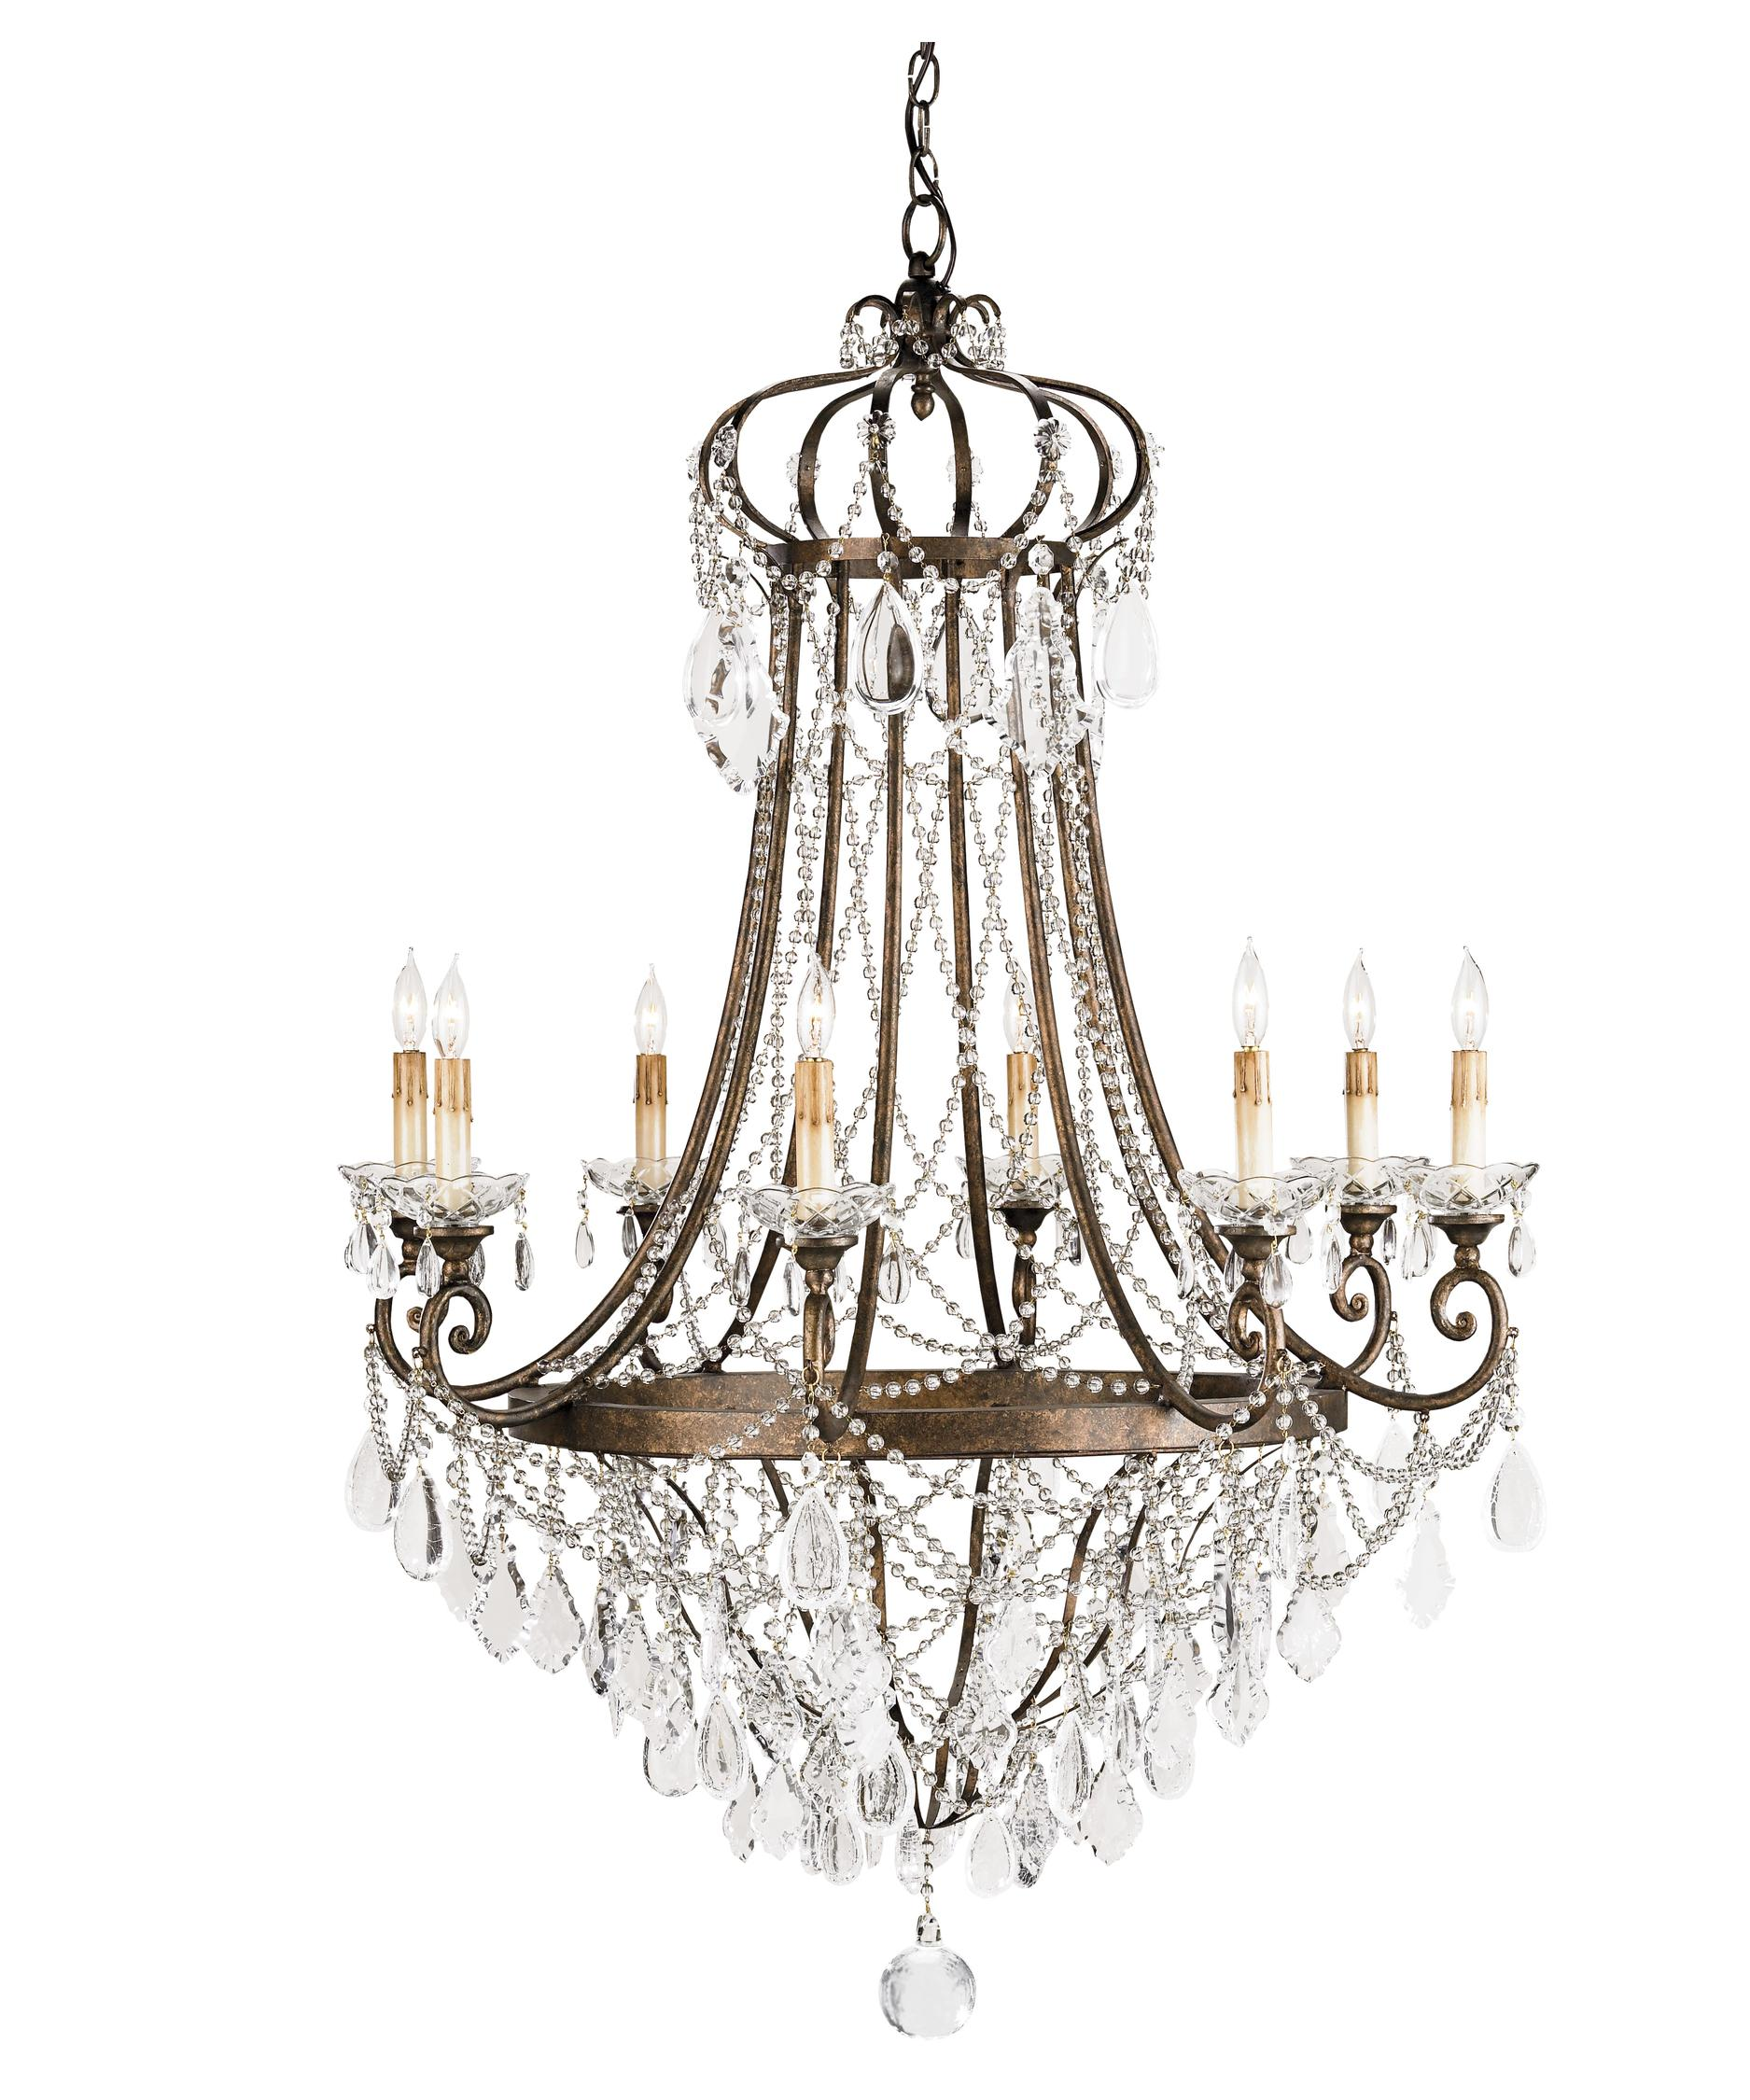 Currey and Company Scarlet 33 Inch Wide 8 Light Chandelier – Currey and Company Lighting Chandeliers